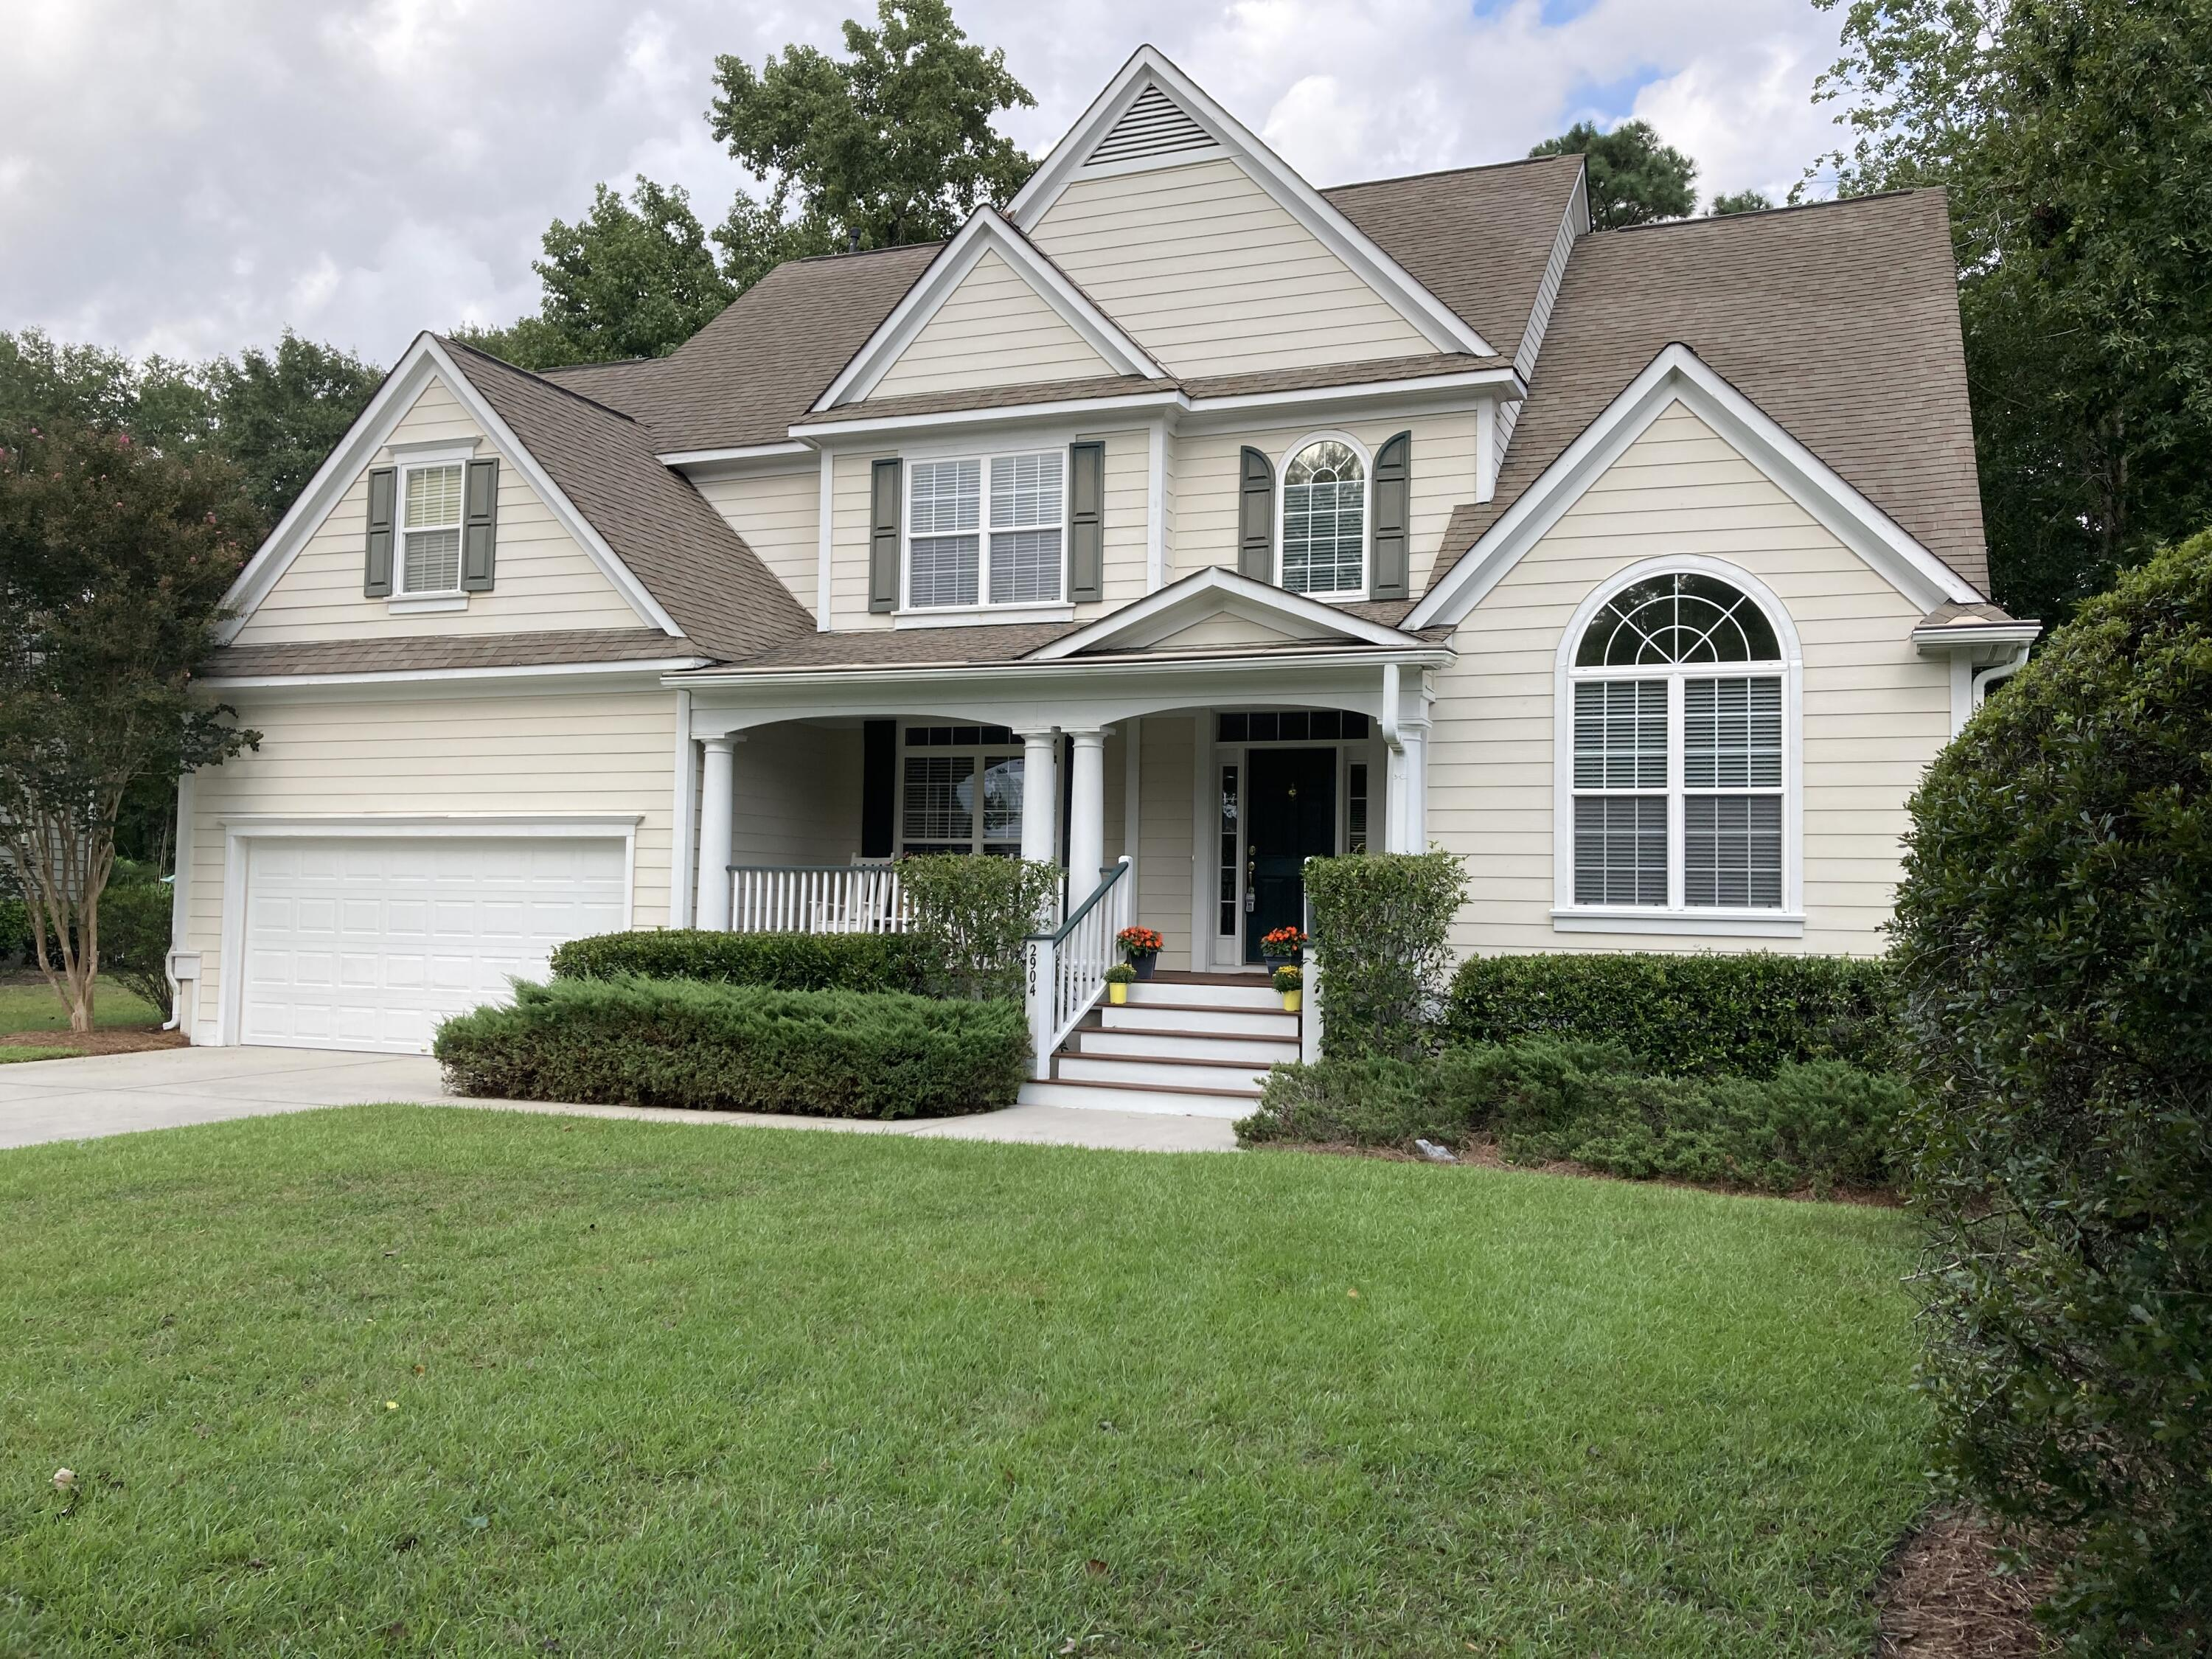 Located in gated Dunes West community, this beauty will delight with 2-story windows in the central room that's open to kitchen with countertop bar, upgraded cabinets, granite, stainless, and eat in area that overlooks tree lined backyard. 1st floor MBR and bath take in views of yard and trees, too!  Unused 2nd floor holds 3 more bedrooms, bath and tons of storage - possibilities for expansion. Meticulously maintained with 2 new gas furnaces, 2 new air conditioners, hot water heater, dishwasher and refrigerator. Recent exterior paint job and gutters w/ leaf guard. The screened porch and deck add to enjoyment of this beautiful home and private lot. Resort amenities include 3 pools, tennis club, workout center, golf course, boat launch and storage and miles of paved walks with marsh views.